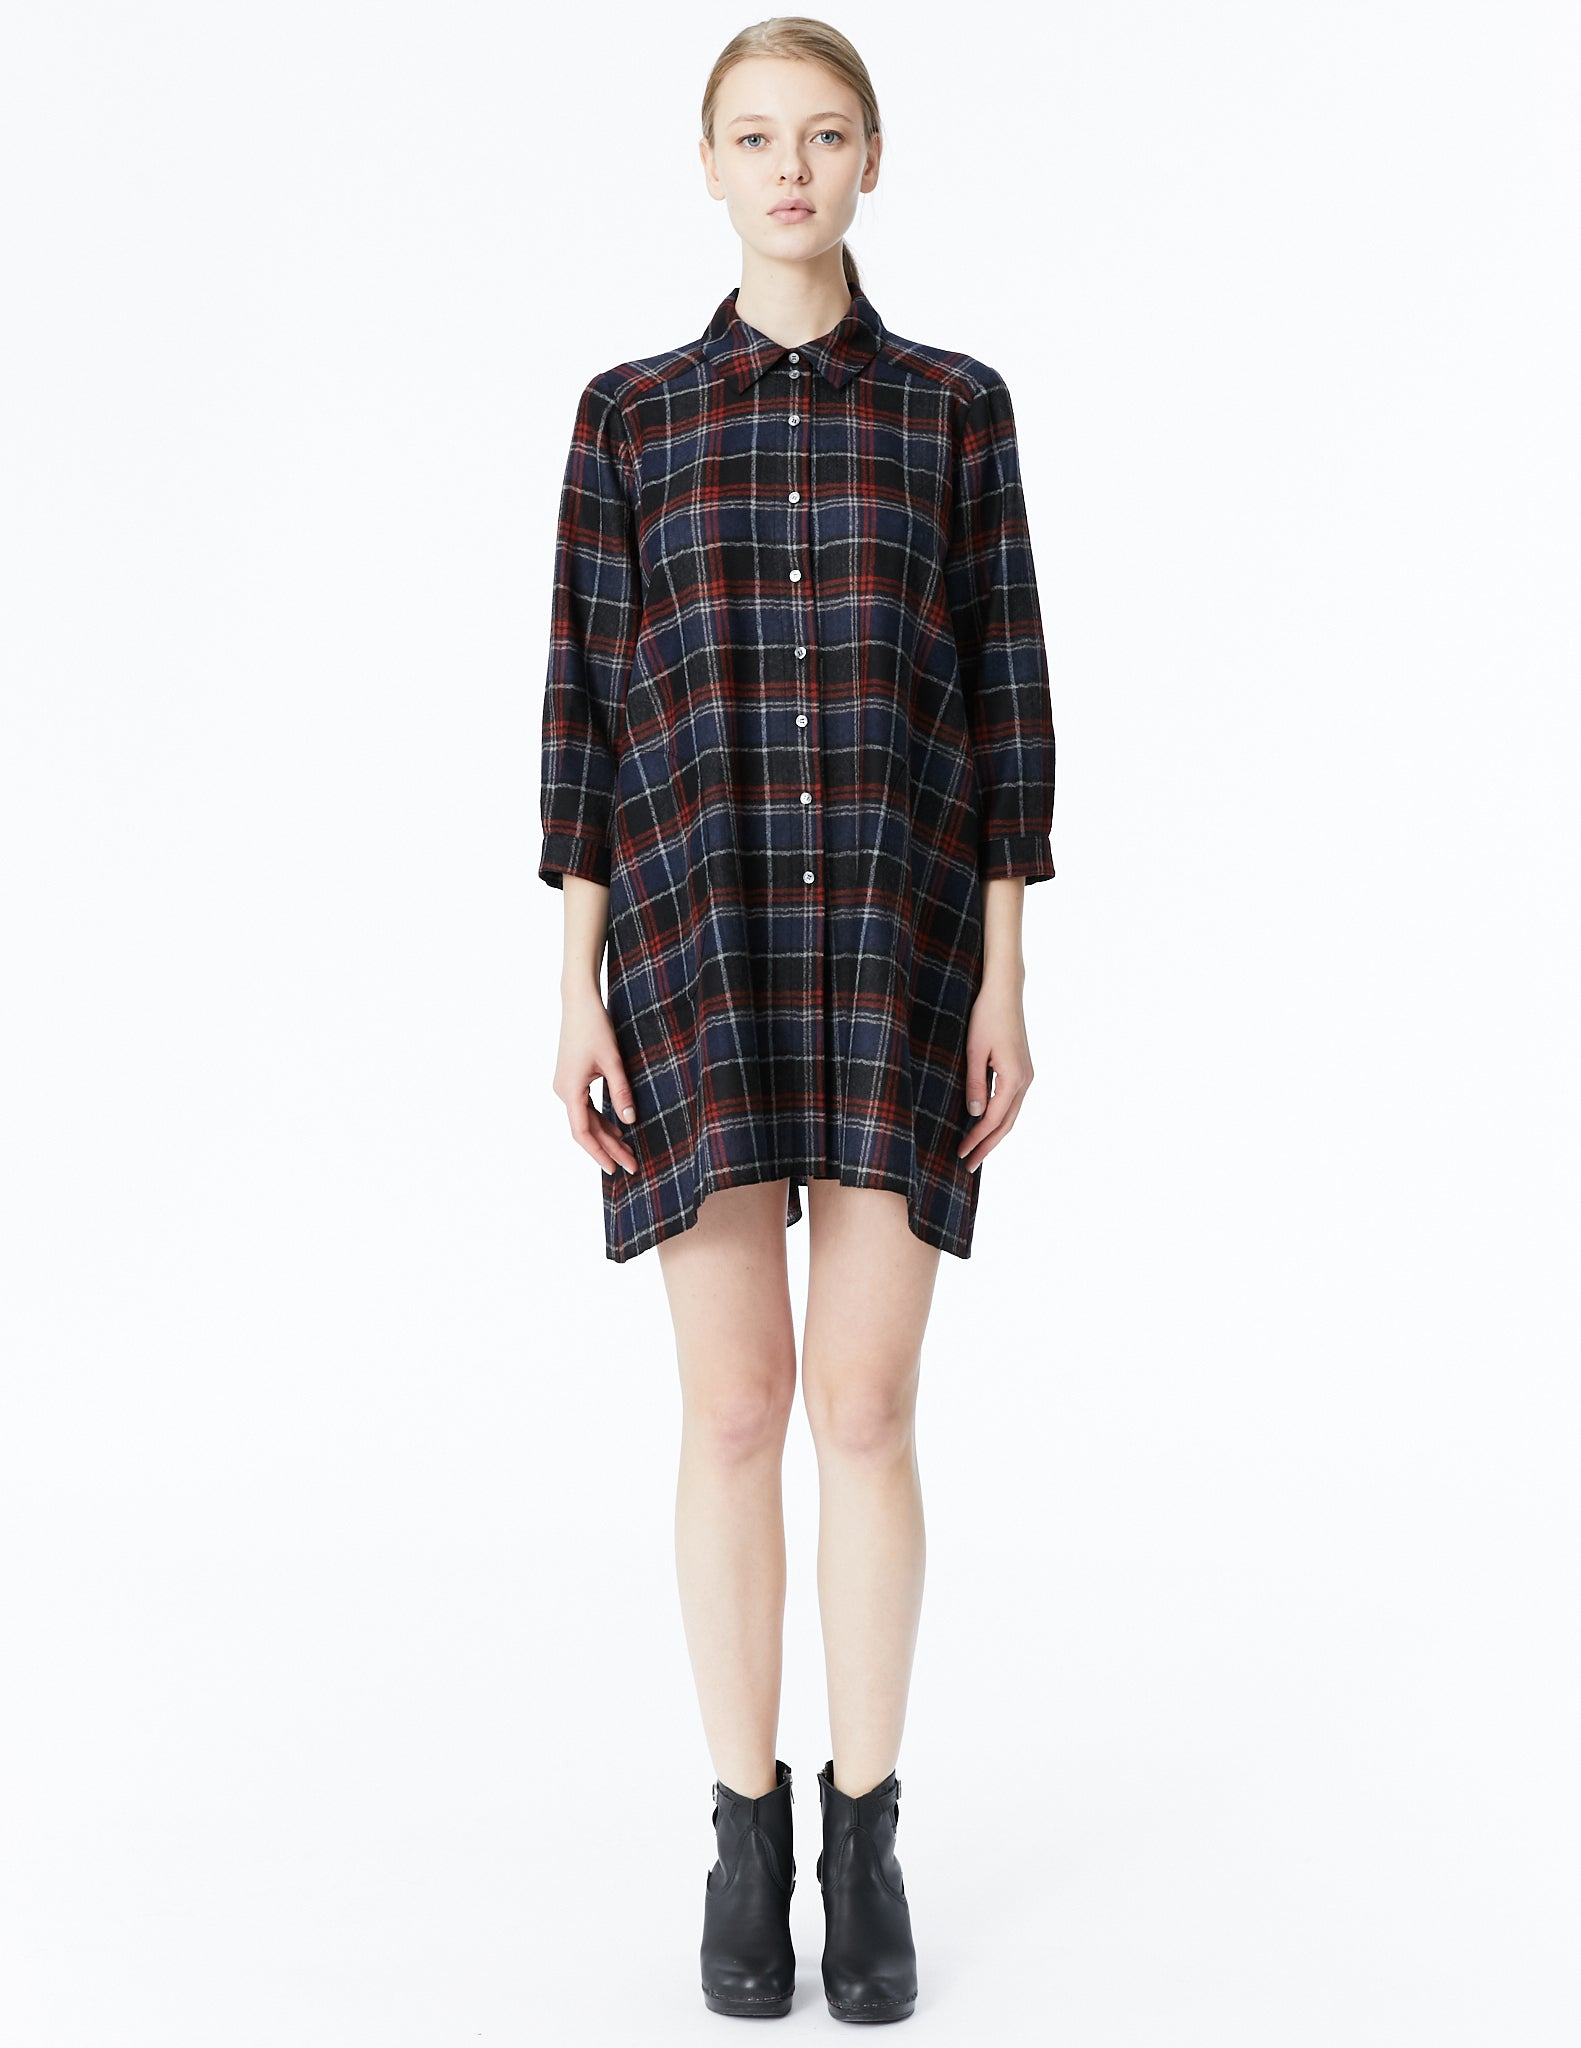 morgane le fay button down shirt dress with asymmetrically curved back panel